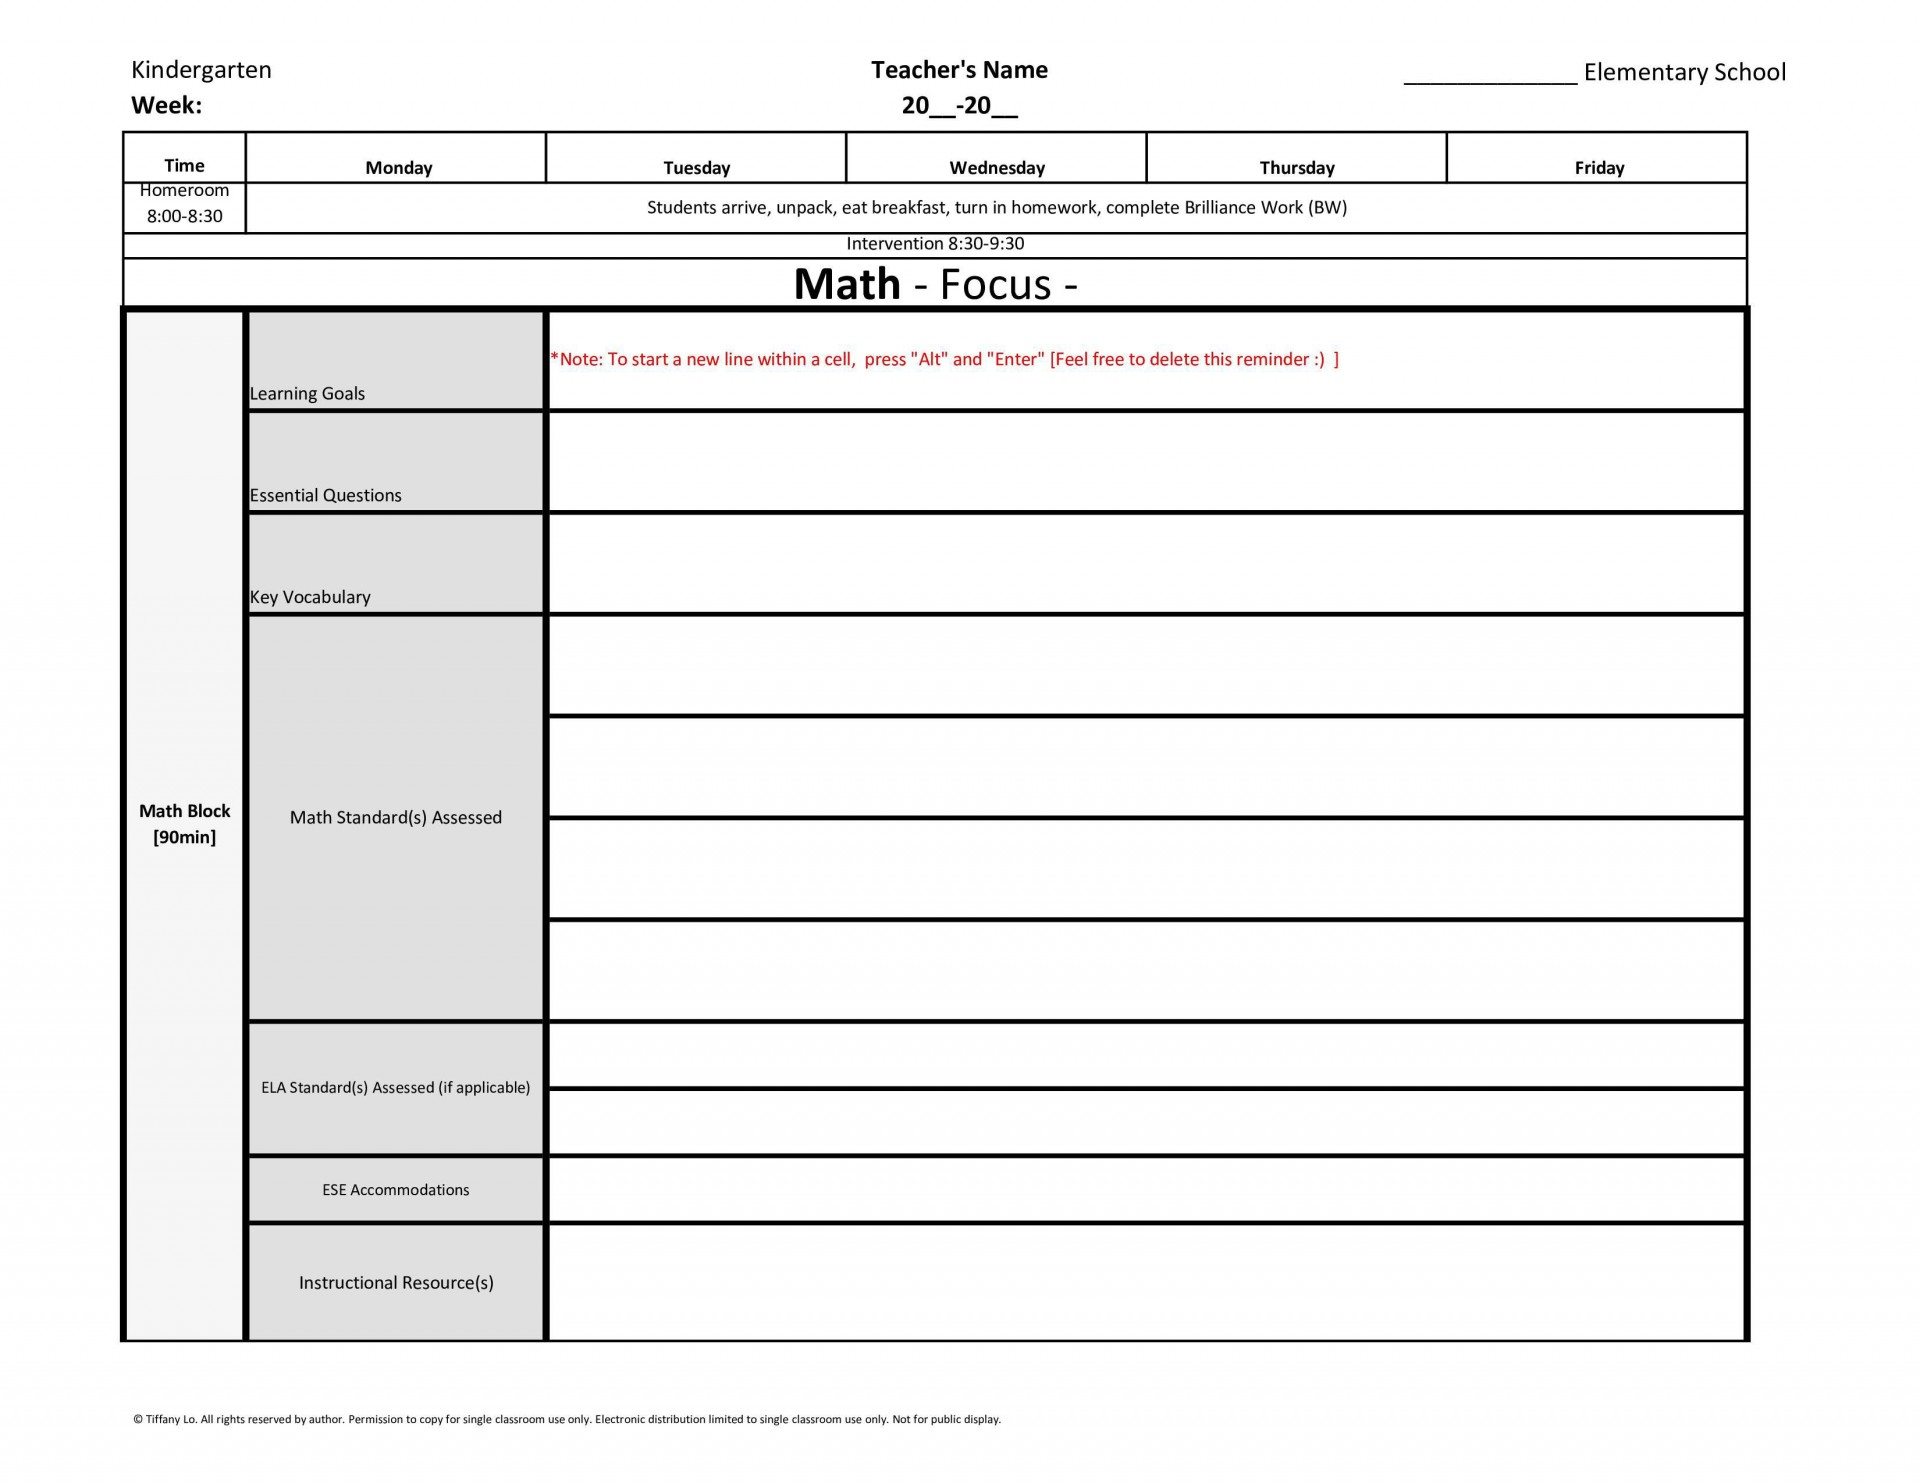 004 Unforgettable Editable Lesson Plan Template Elementary Image 1920